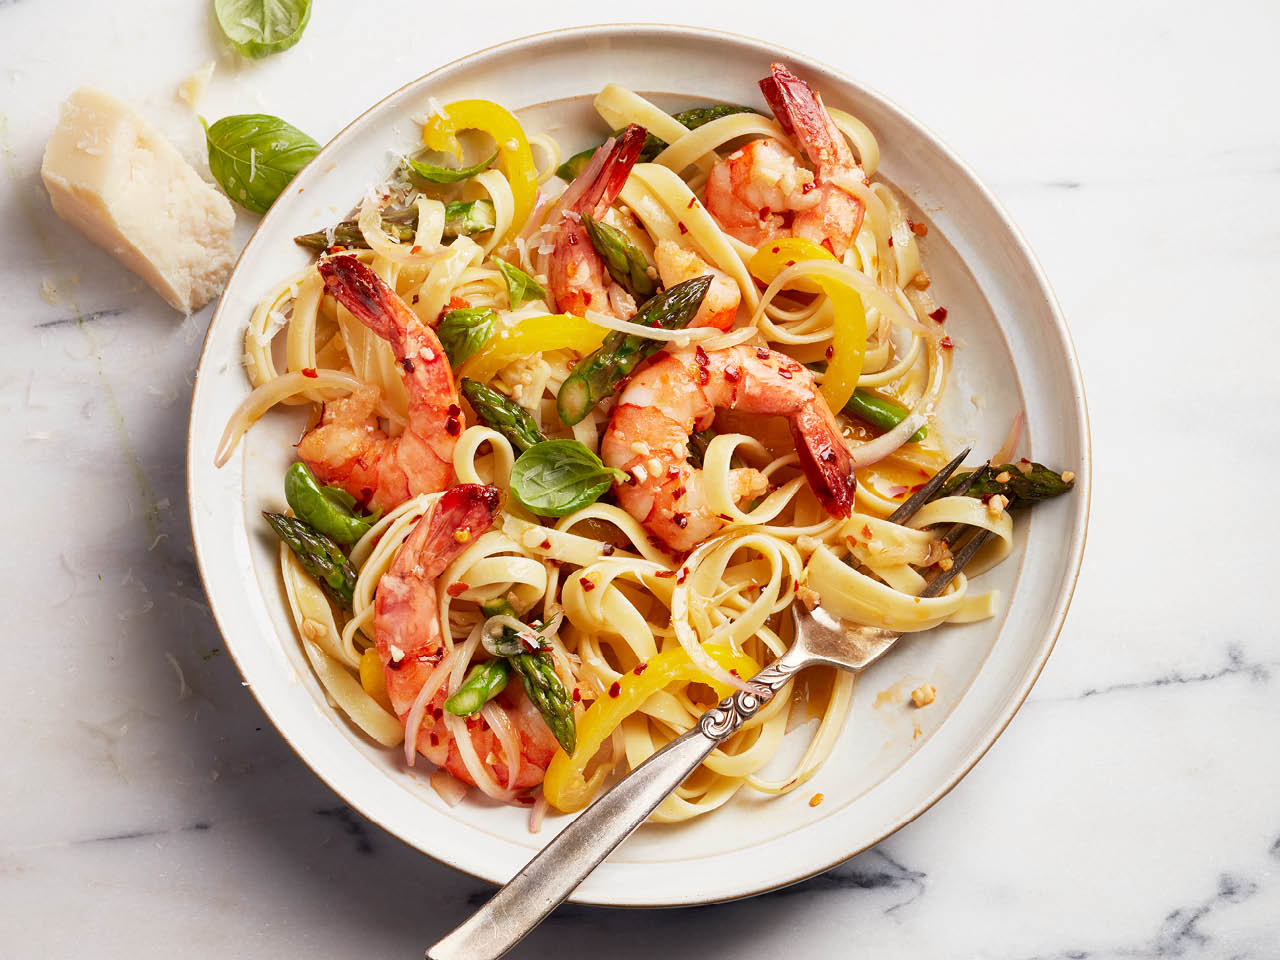 Healthy pasta: shrimp primavera pasta with asparagus